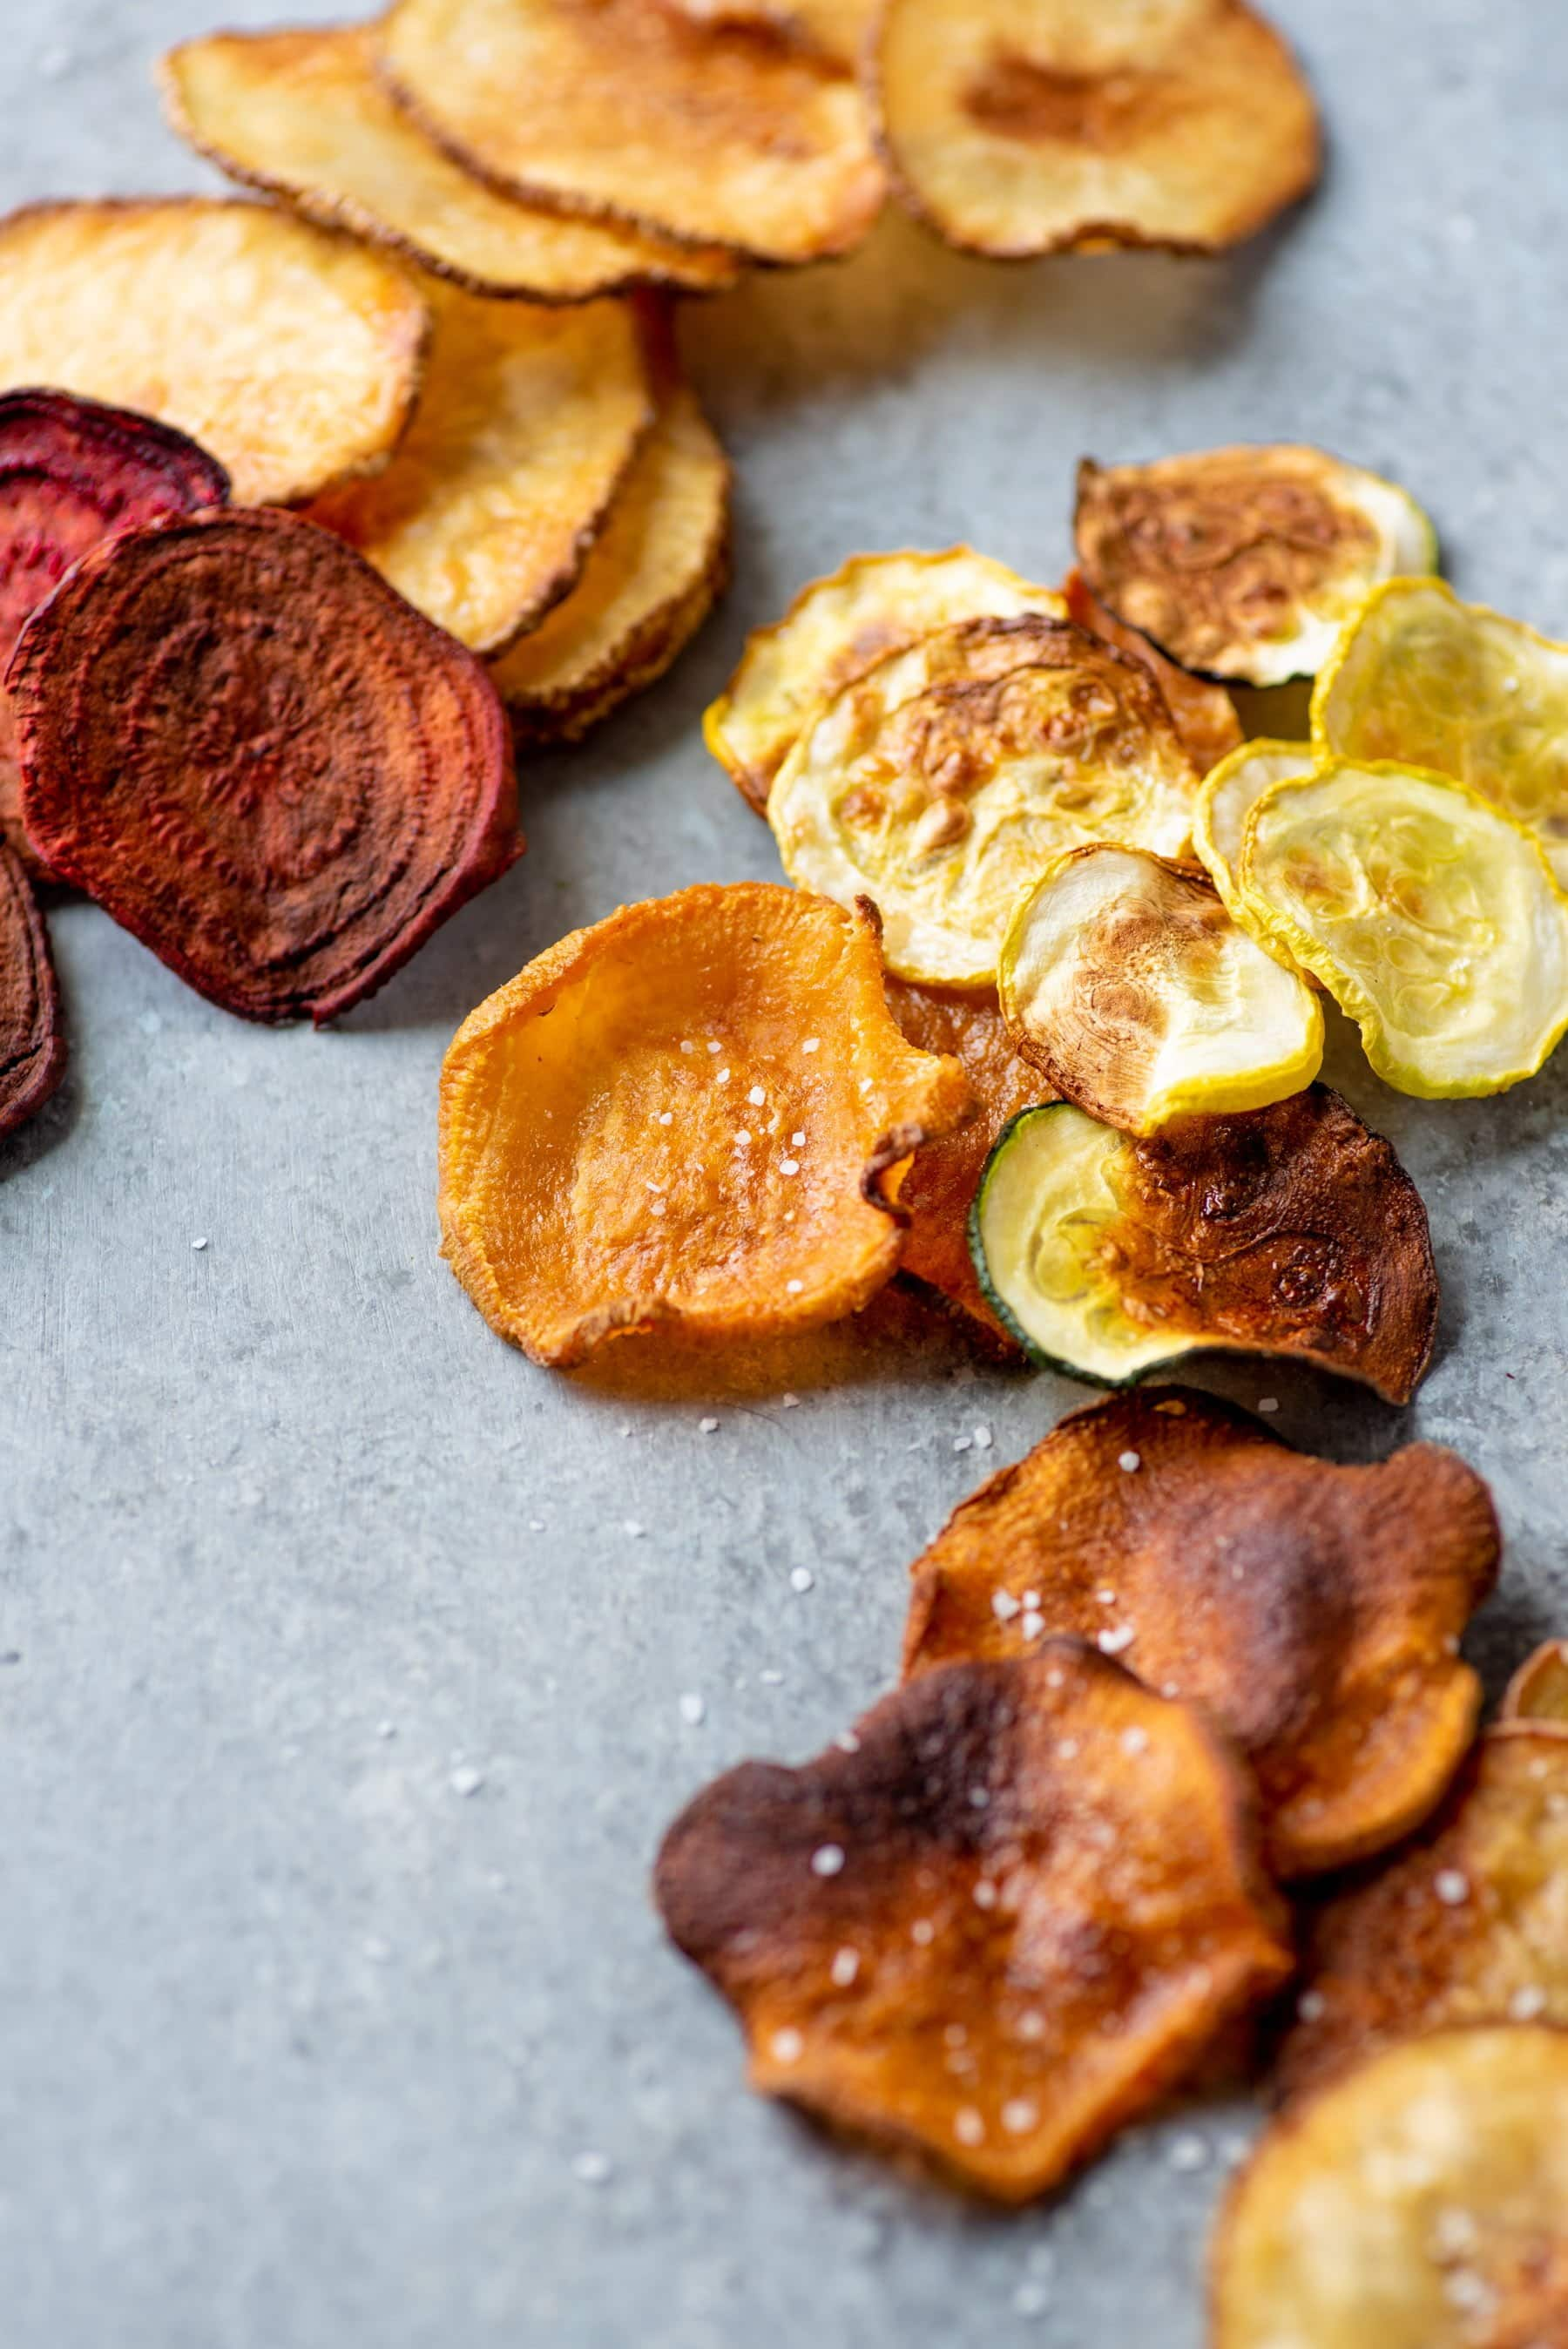 Baked vegetable chips spread out on a grey background